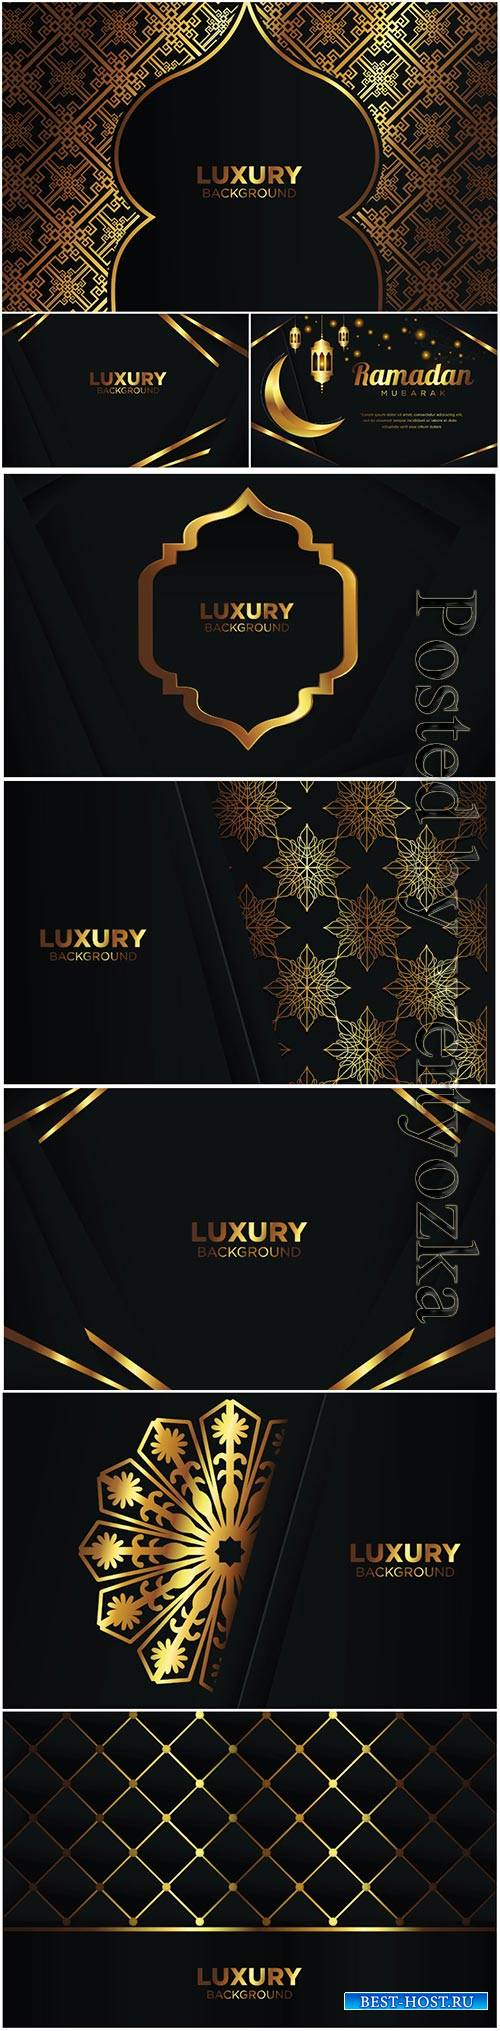 Luxury vector background ramadan islamic arabesque